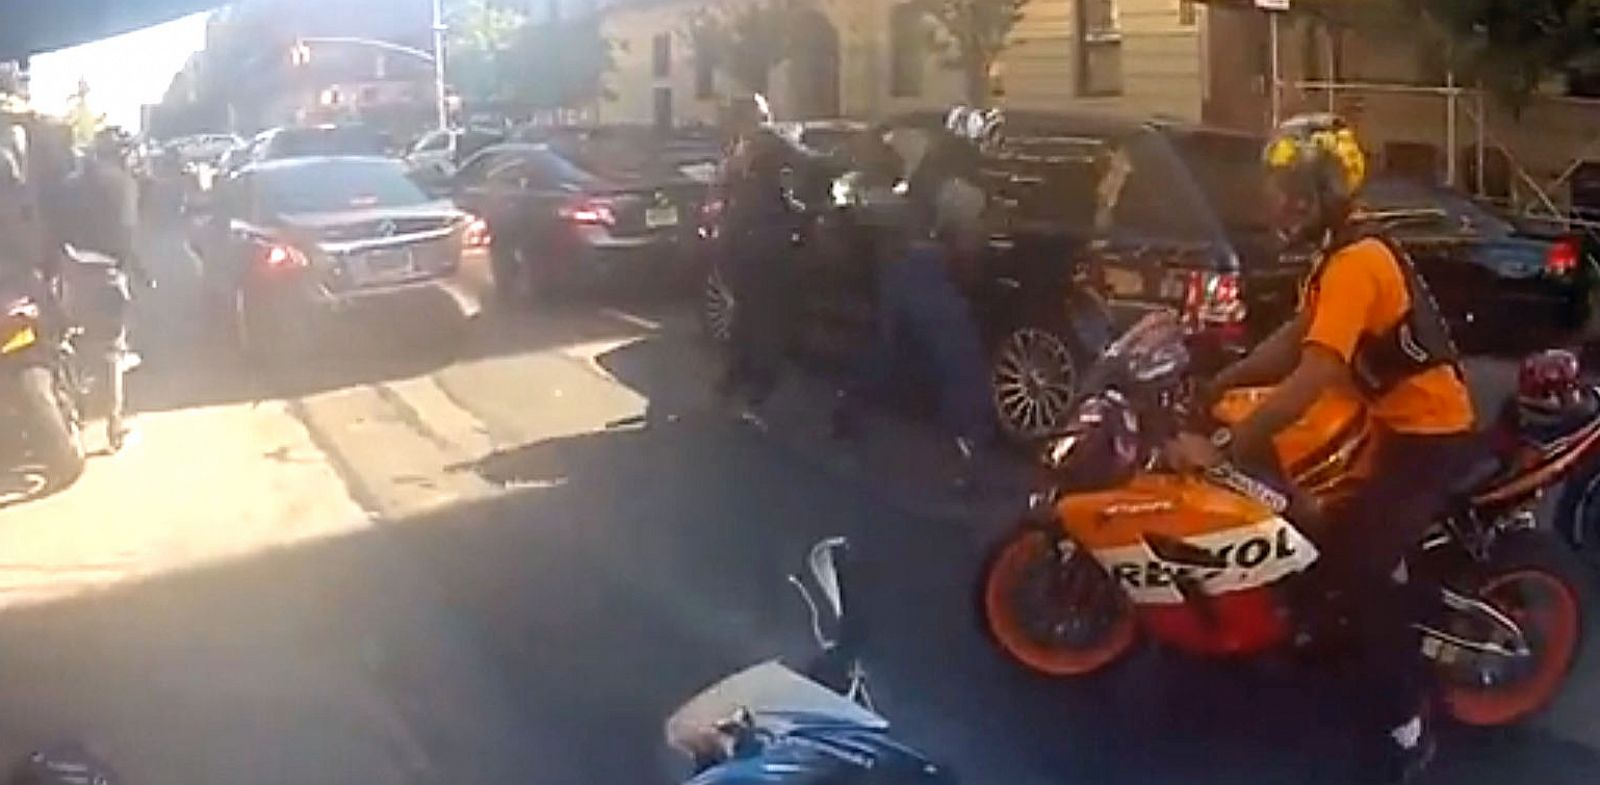 PHOTO: Daphne Avalon posted video, Black Range Rover Runs Over Bikers in NYC, on YouTube showing a biker and car chase ending in biker smashing the drivers window and assaulting him.